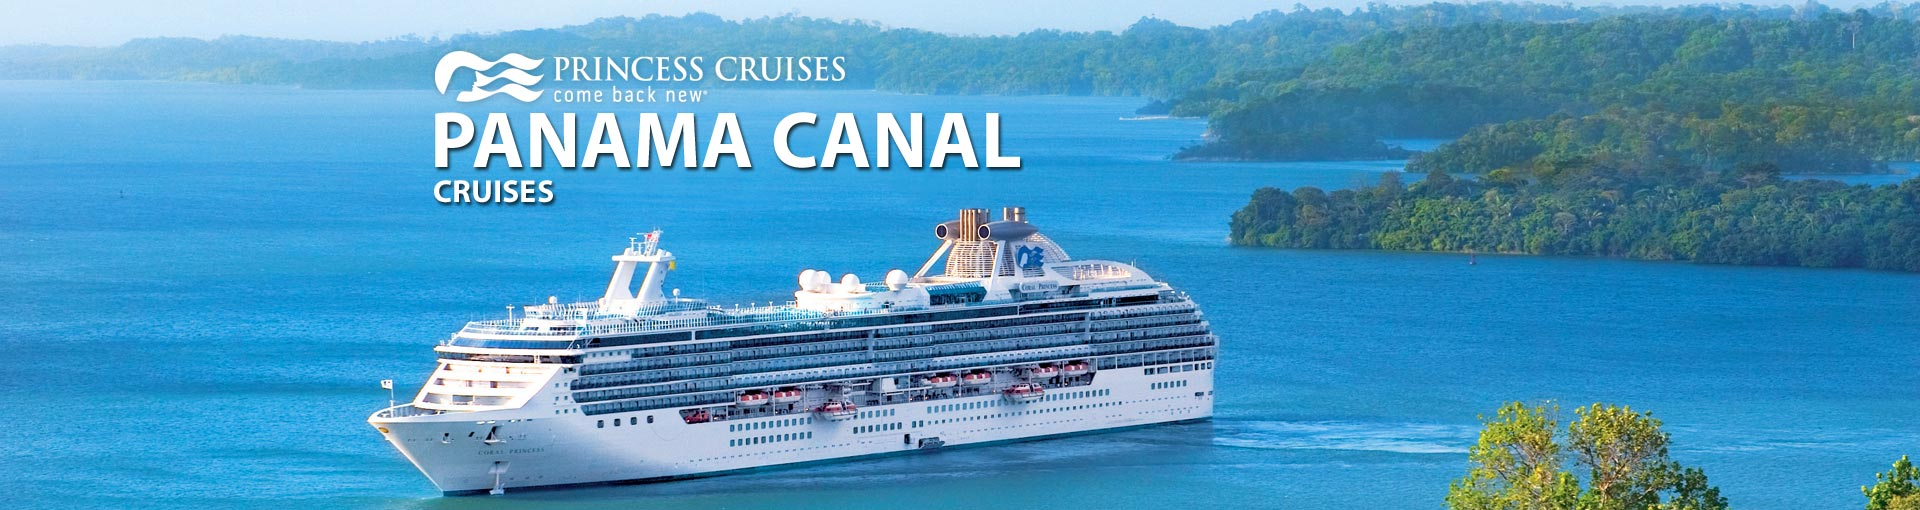 Princess Panama Canal Cruises